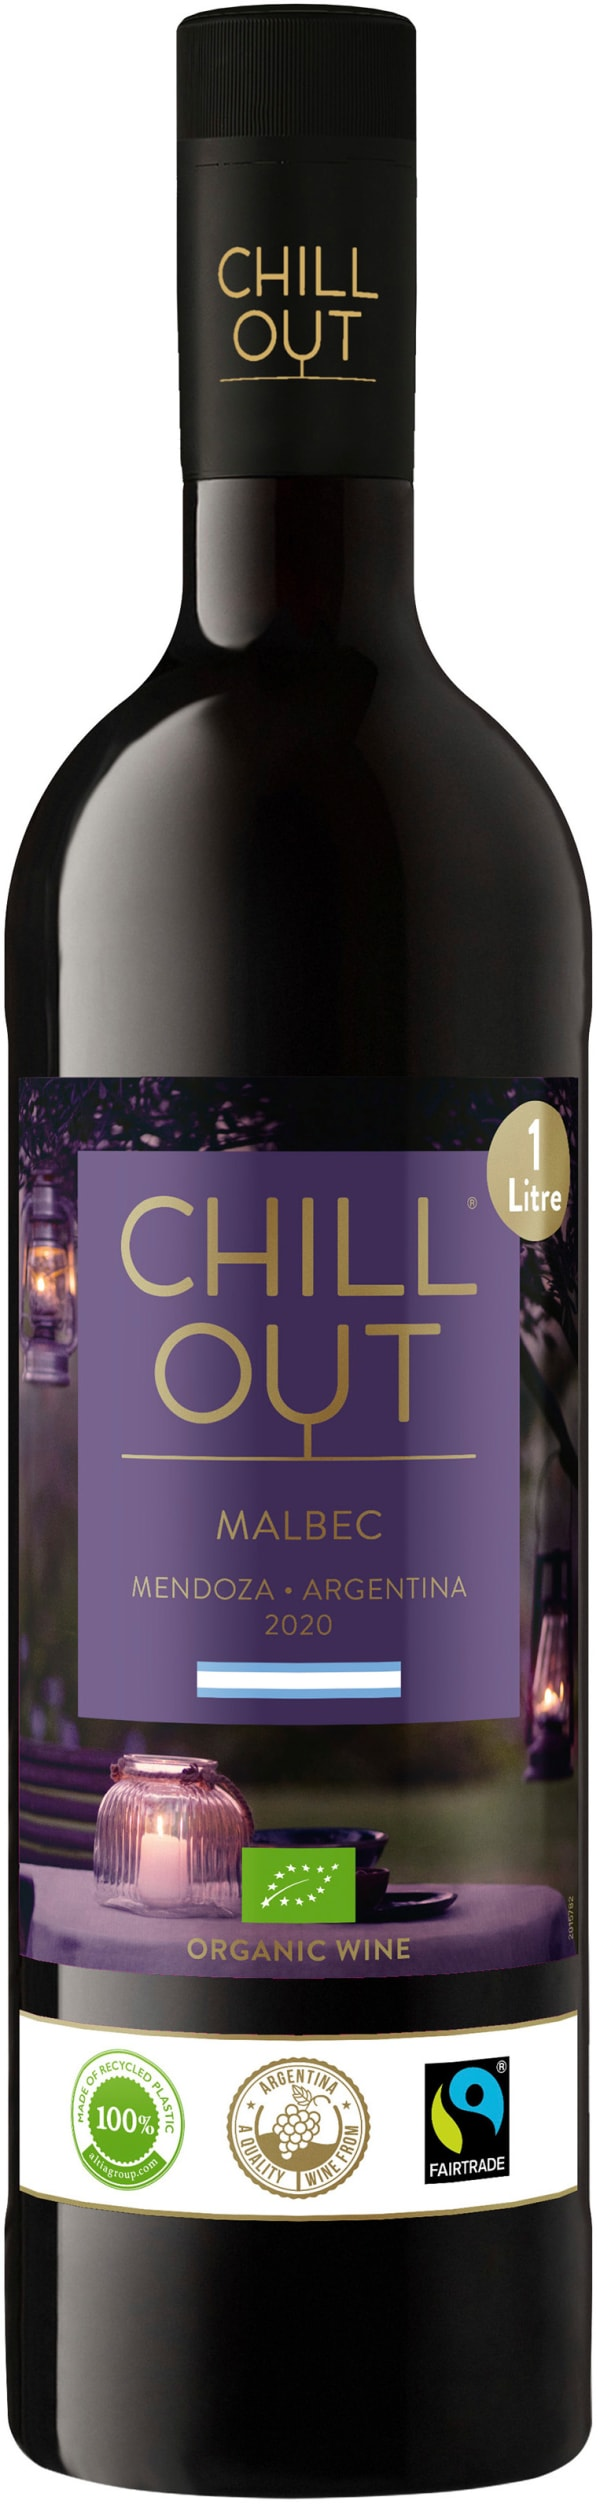 Chill Out Malbec Argentina 2019 plastic bottle